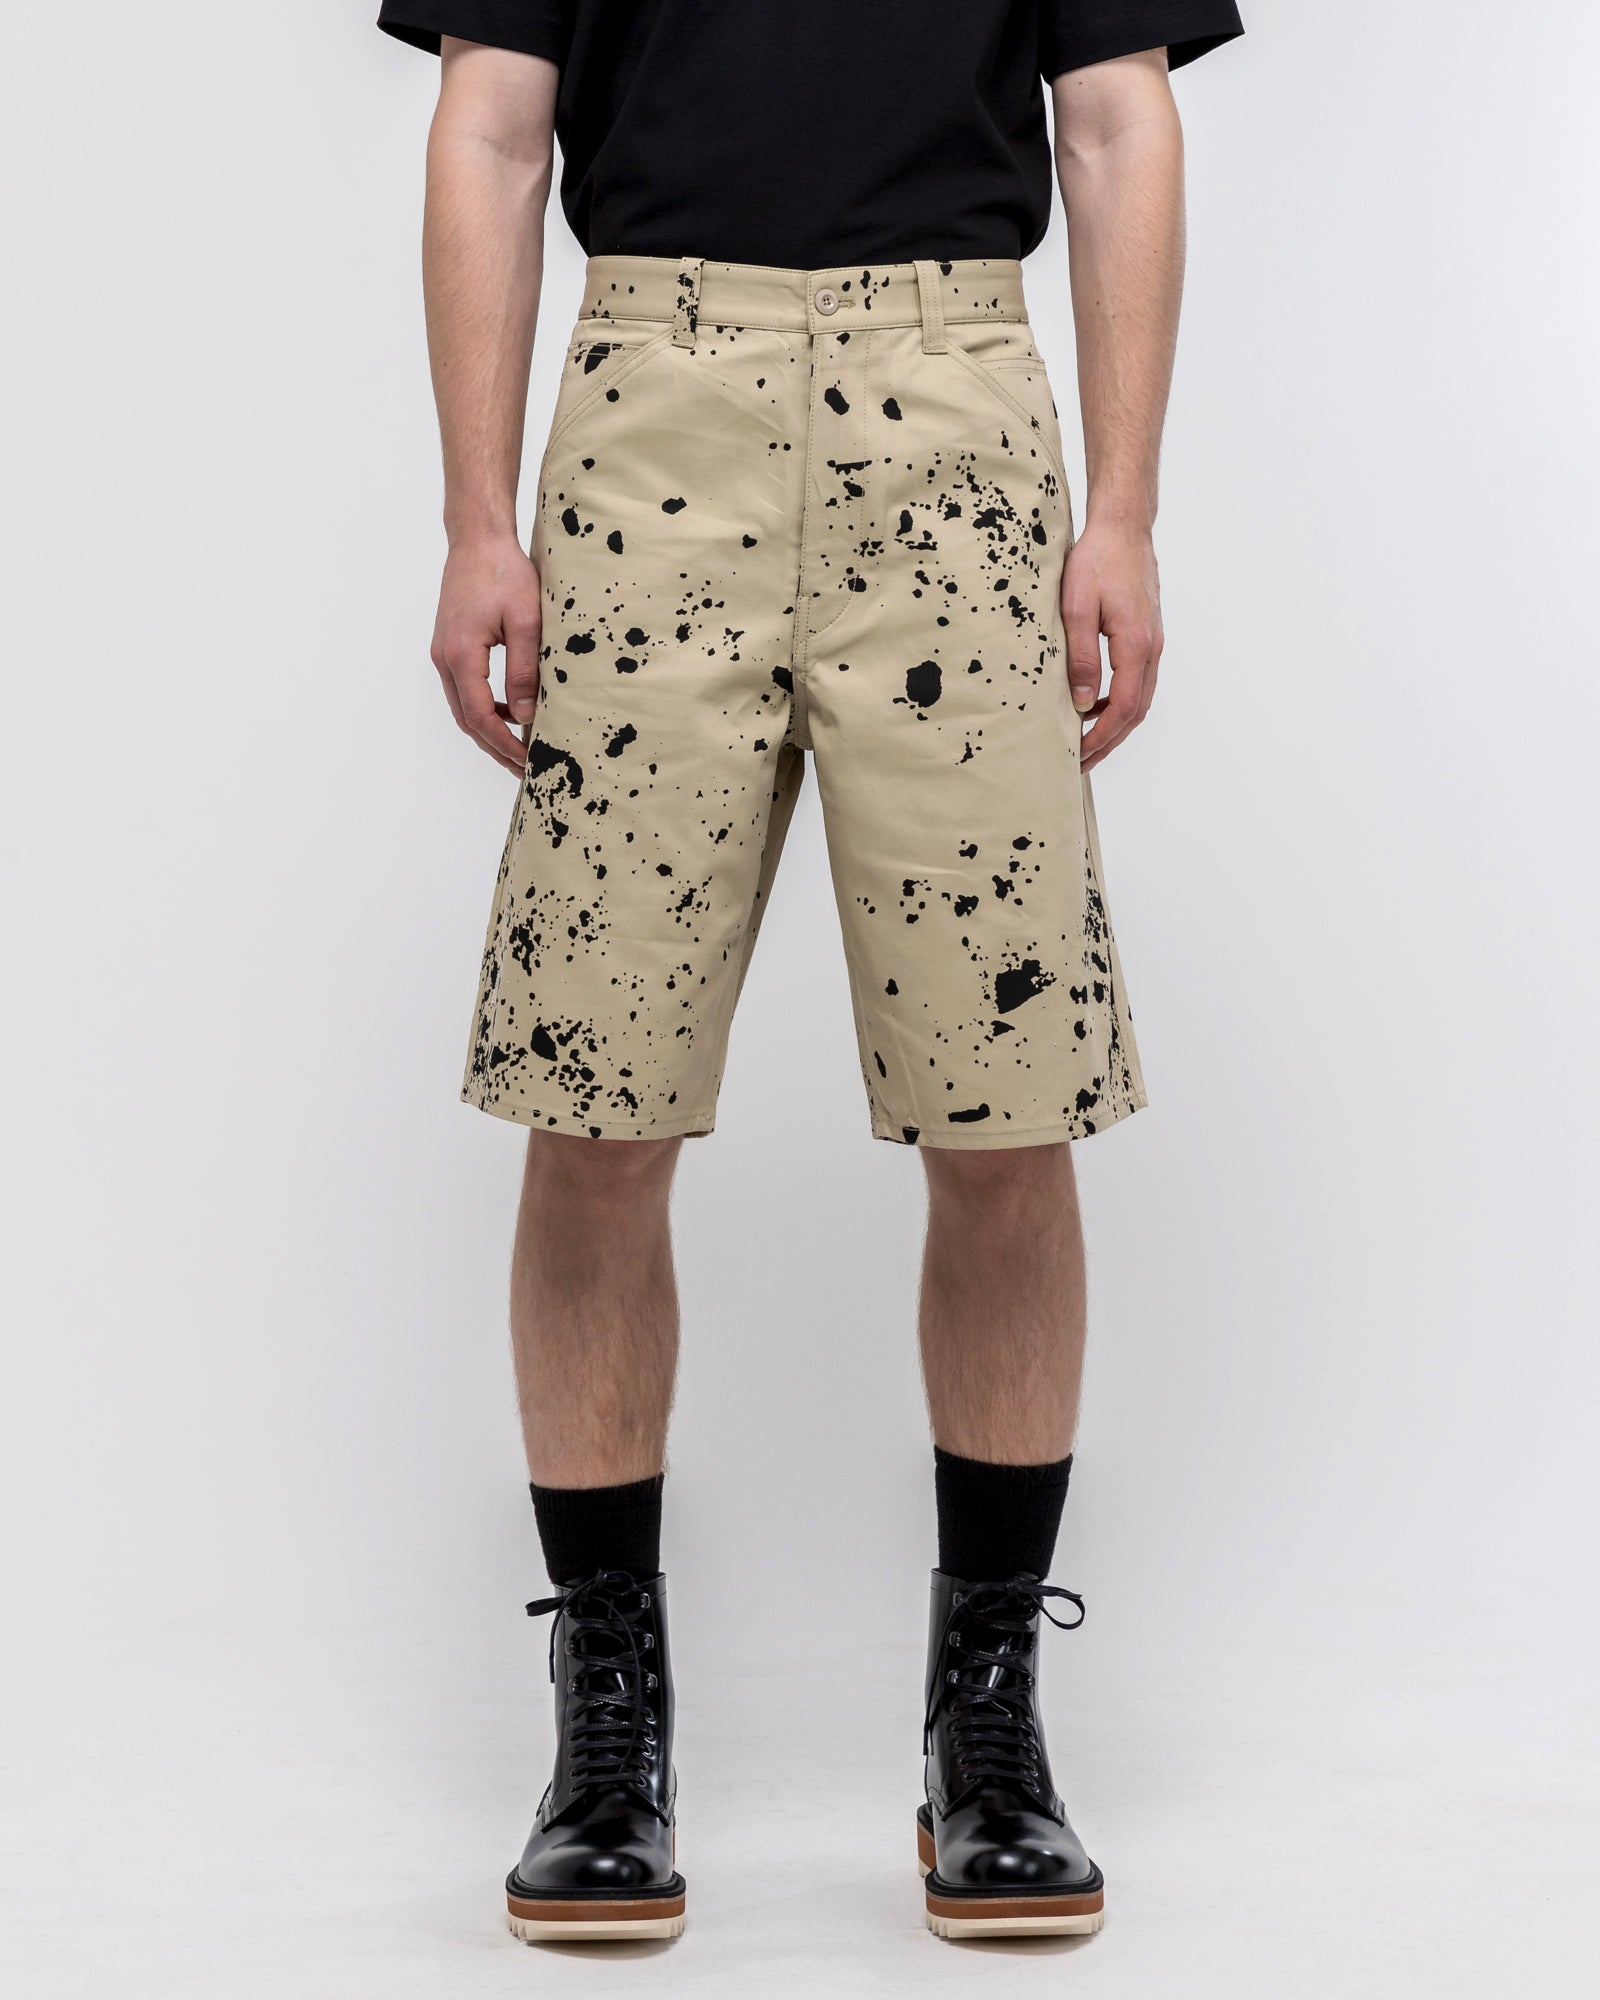 Orion Short in Dark Beige